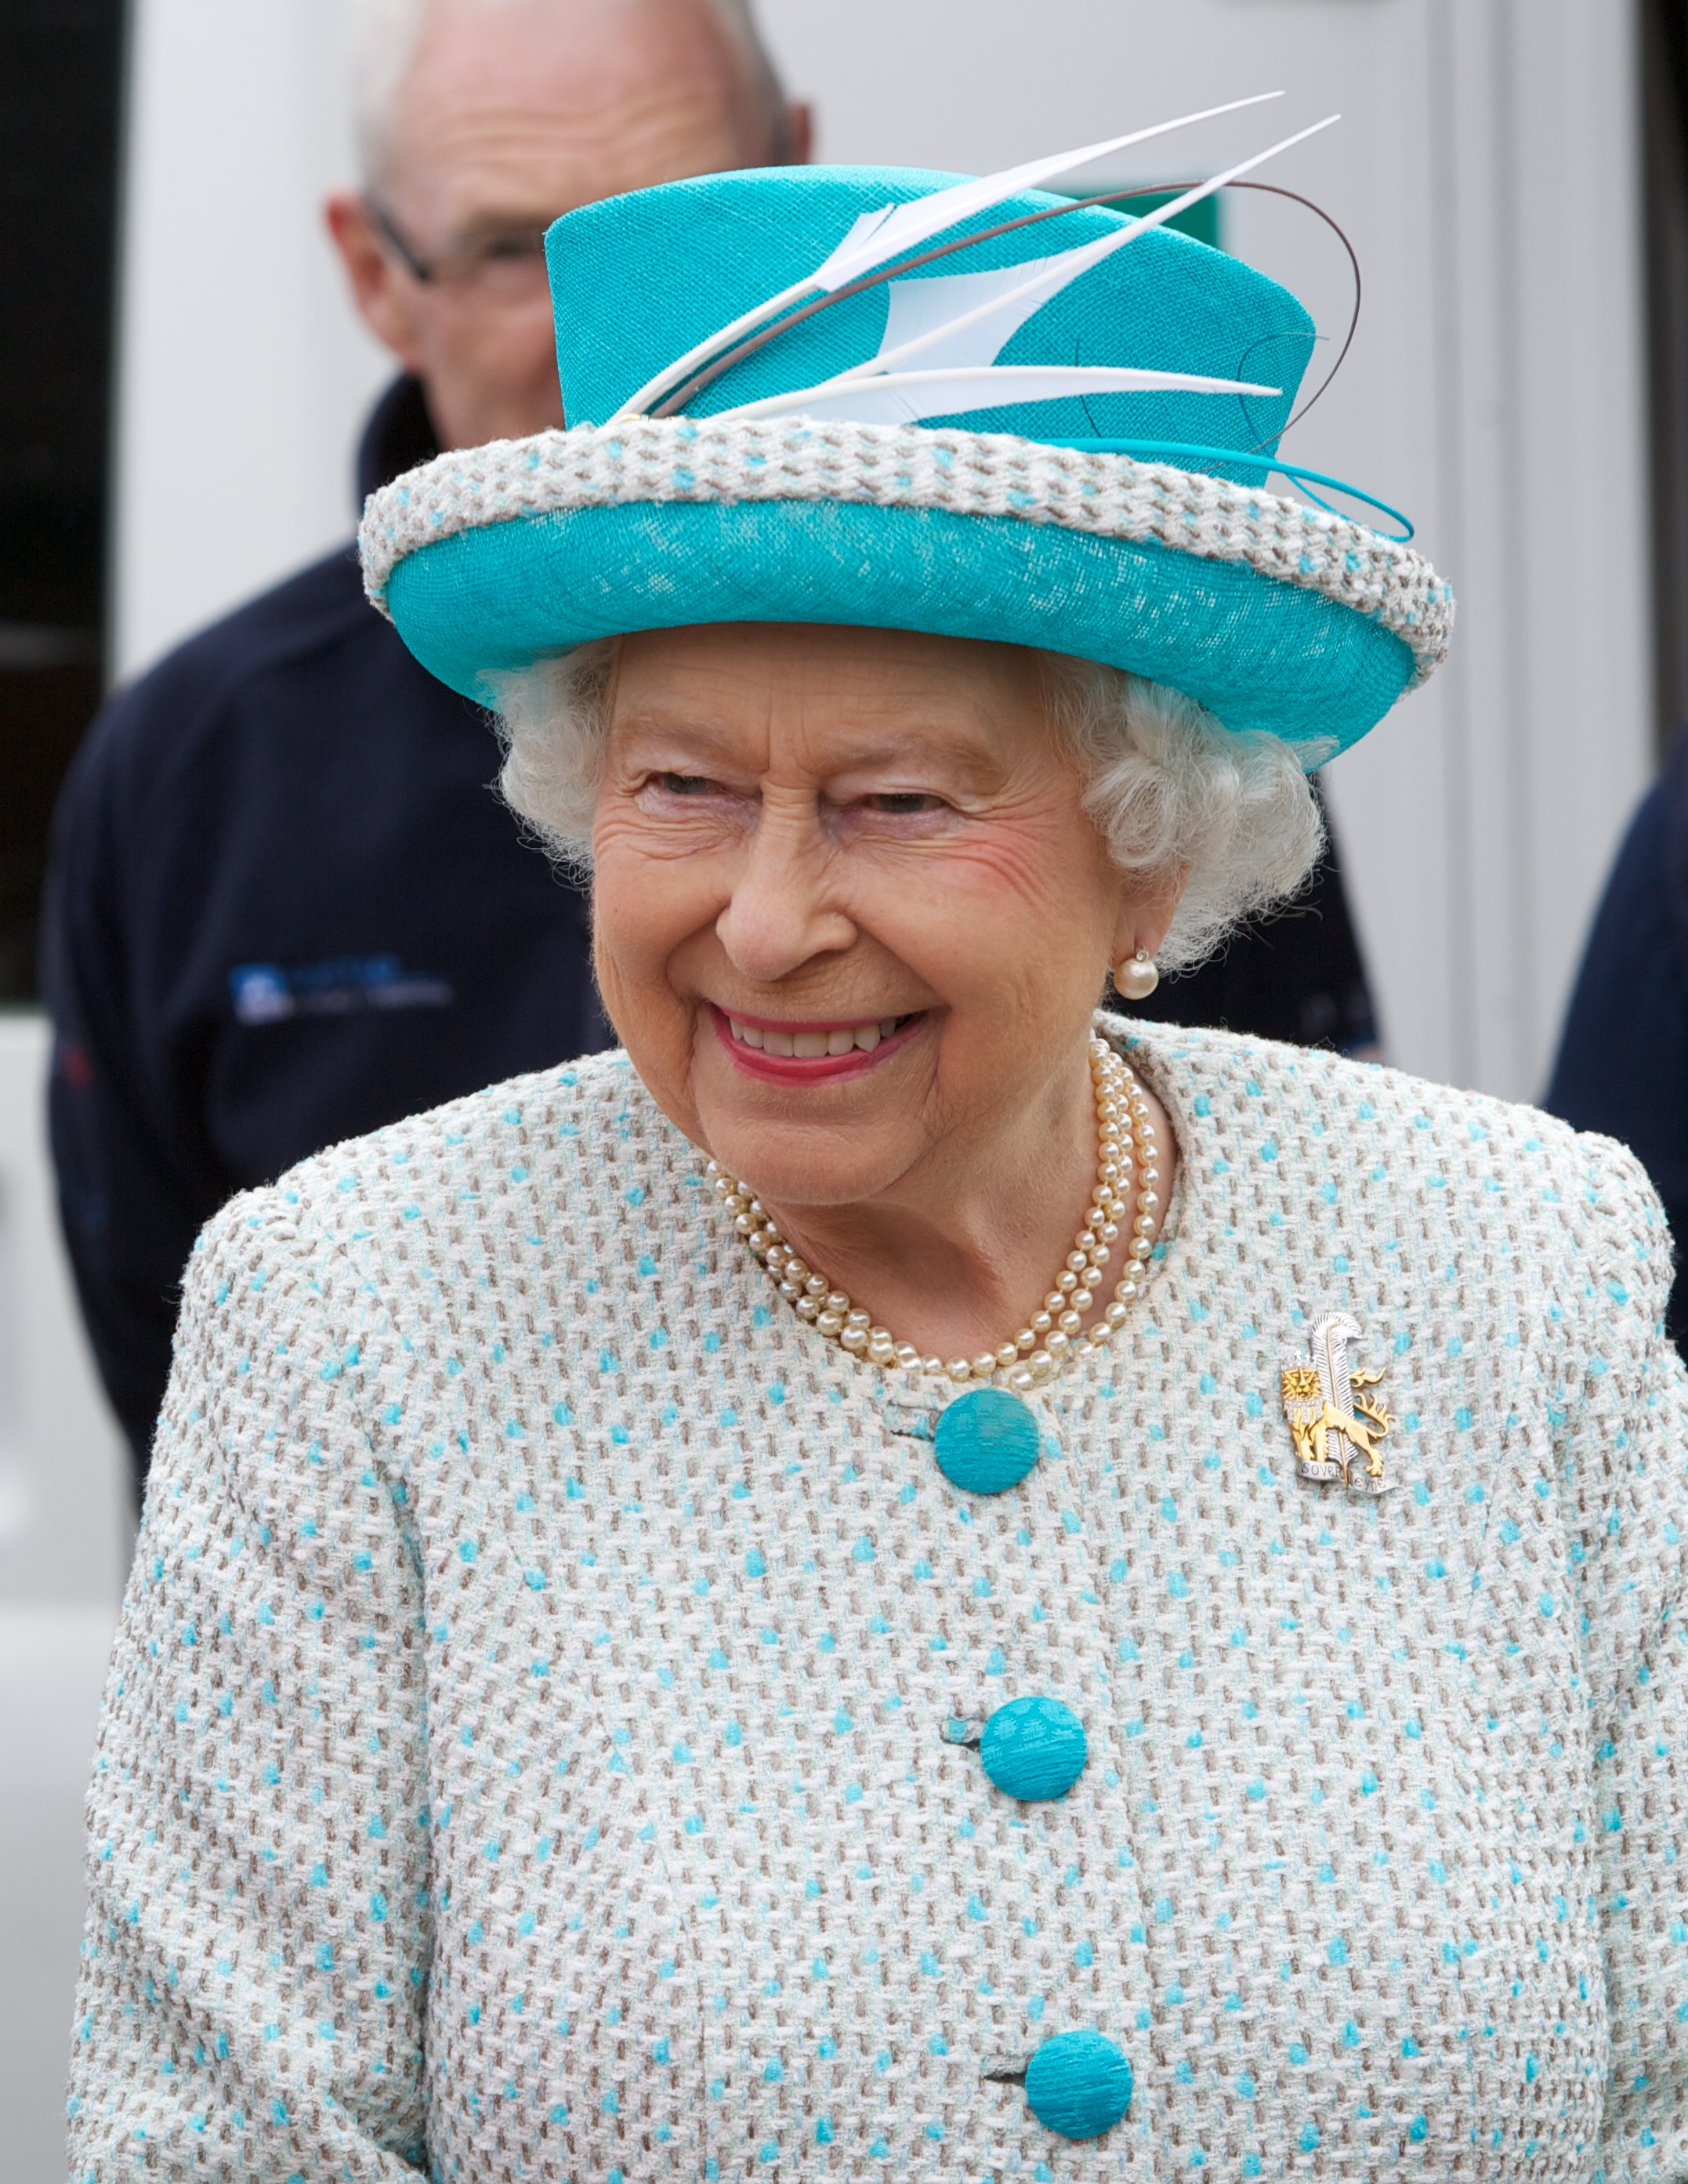 Her Majesty The Queen Visits Duchy of Lancaster